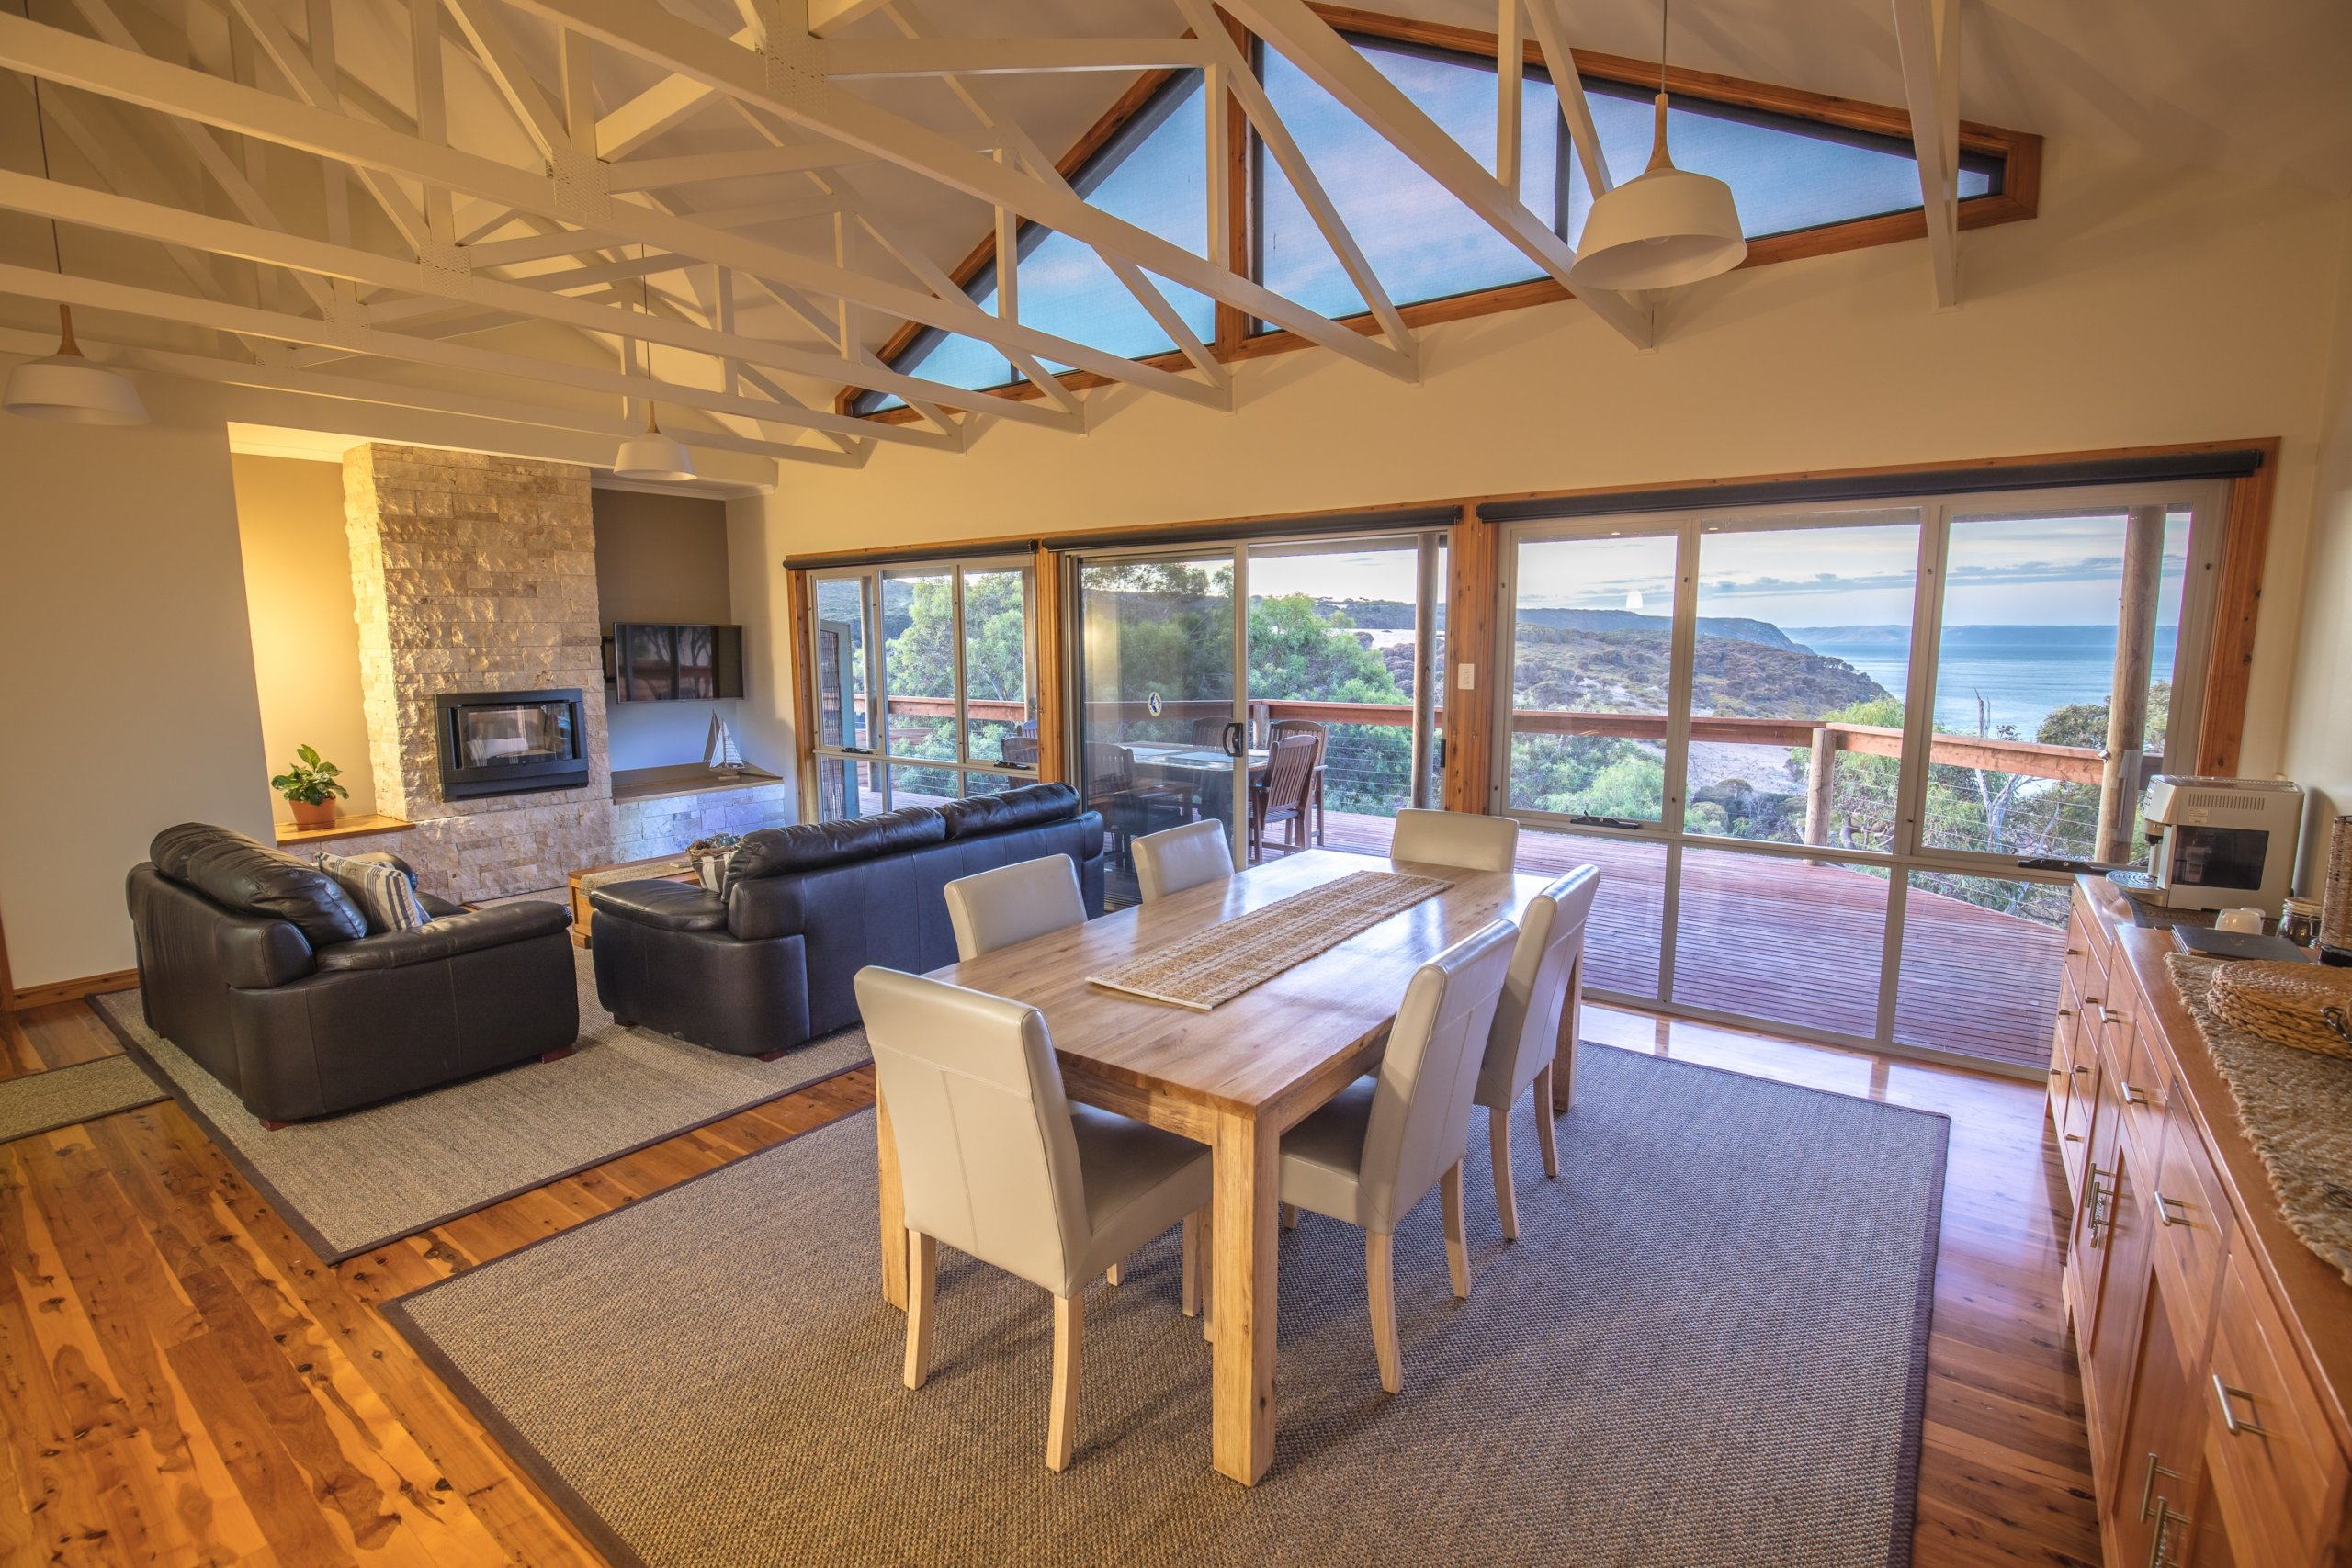 Kangaroo Island luxury lodge;luxury kangaroo island lodge; Sea Dragon Lodge; Lodge Lounge and View;luxury ki lodge